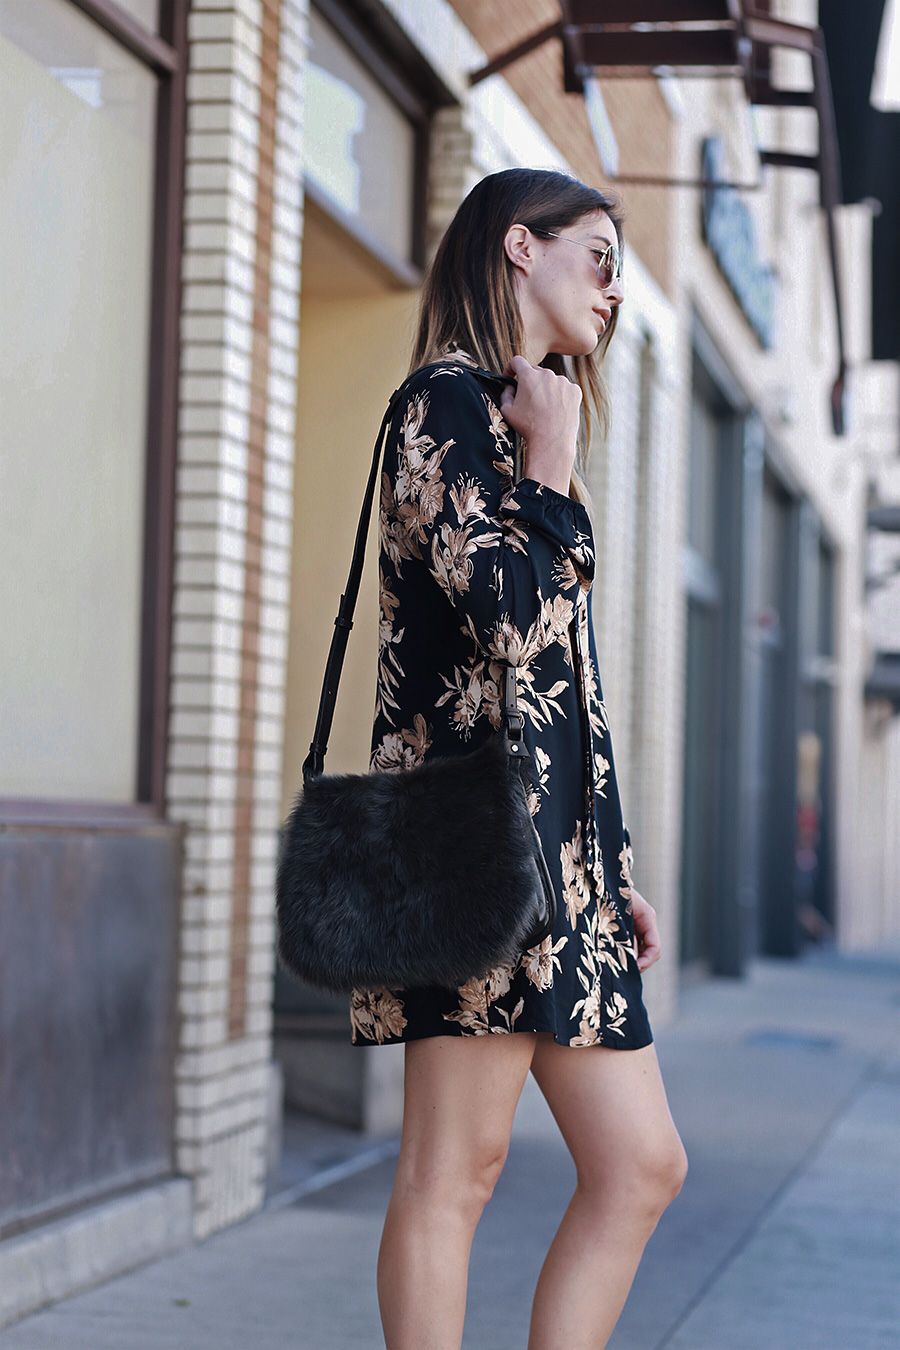 Thrifts and Threads Fall Floral Dress